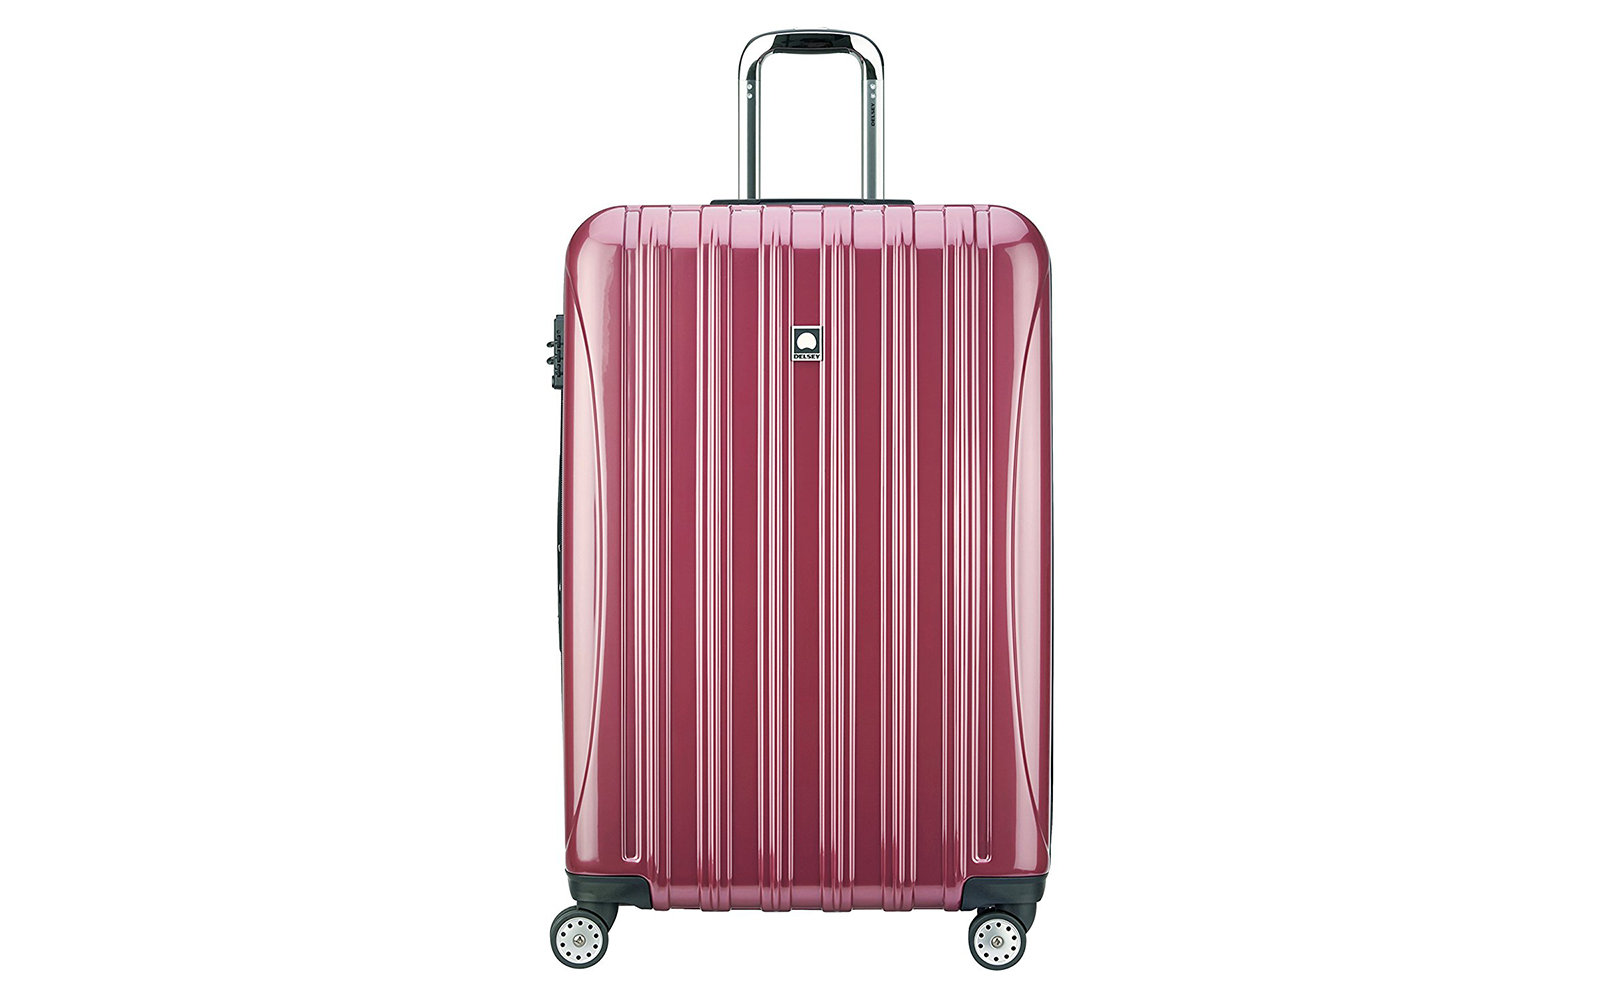 Delsey Luggage Helium Aero Spinner Suitcase